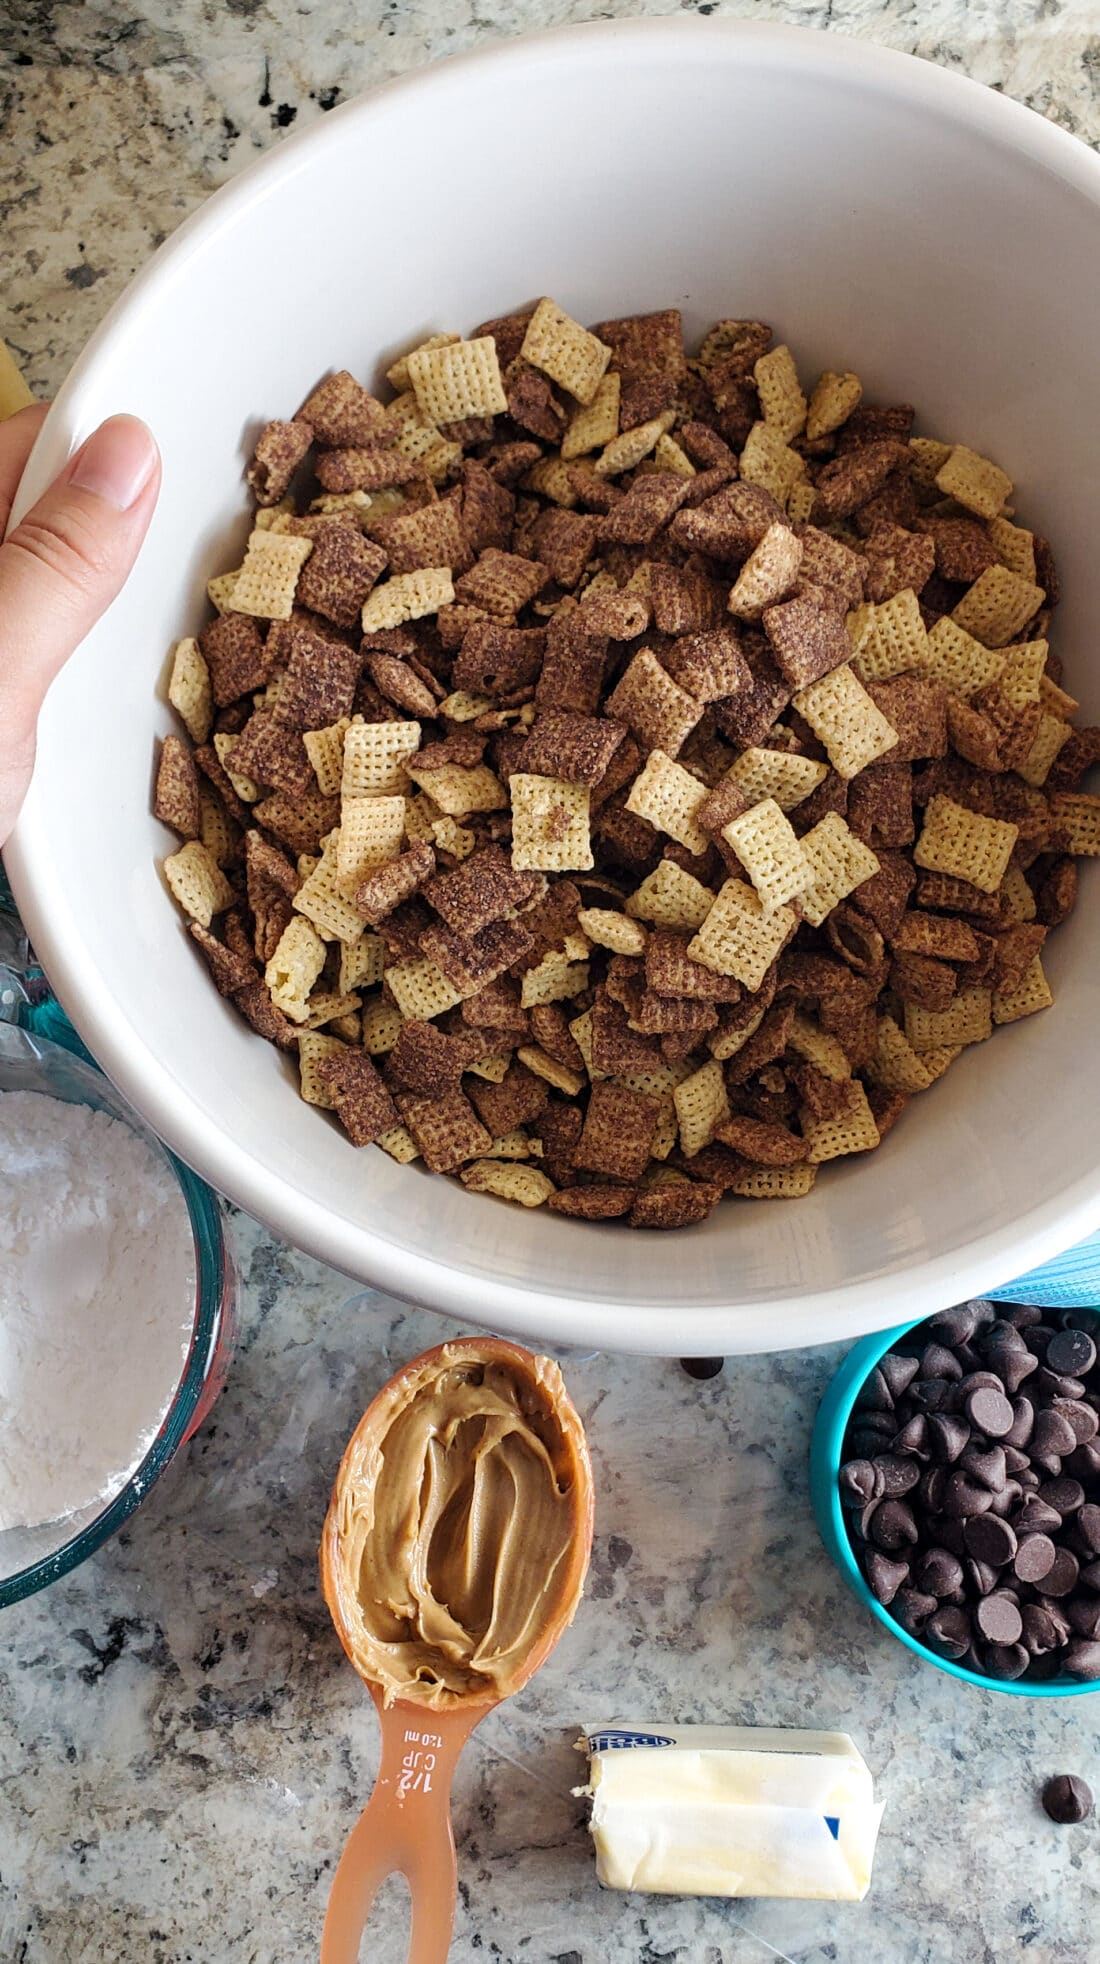 Scooby Snacks Recipe Ingredients. If you enjoy solving a good old mystery with your favorite gang of meddling kids, then you will love this Scooby Snack Recipe. It's full of chocolate, peanut butter and is said to be Scooby's favorite snack when he watches movies.